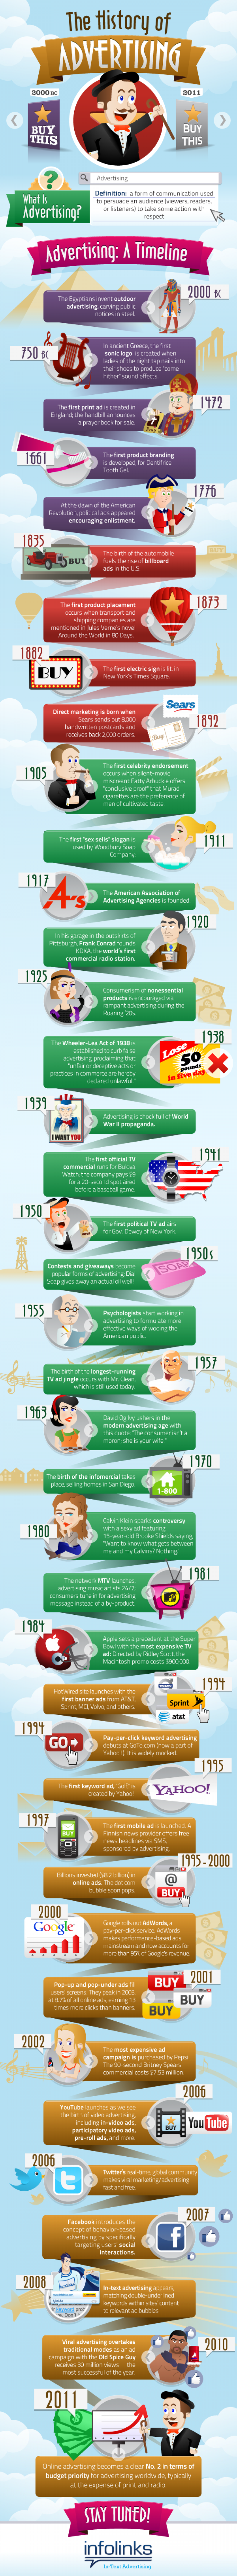 The History of Advertising Infographic